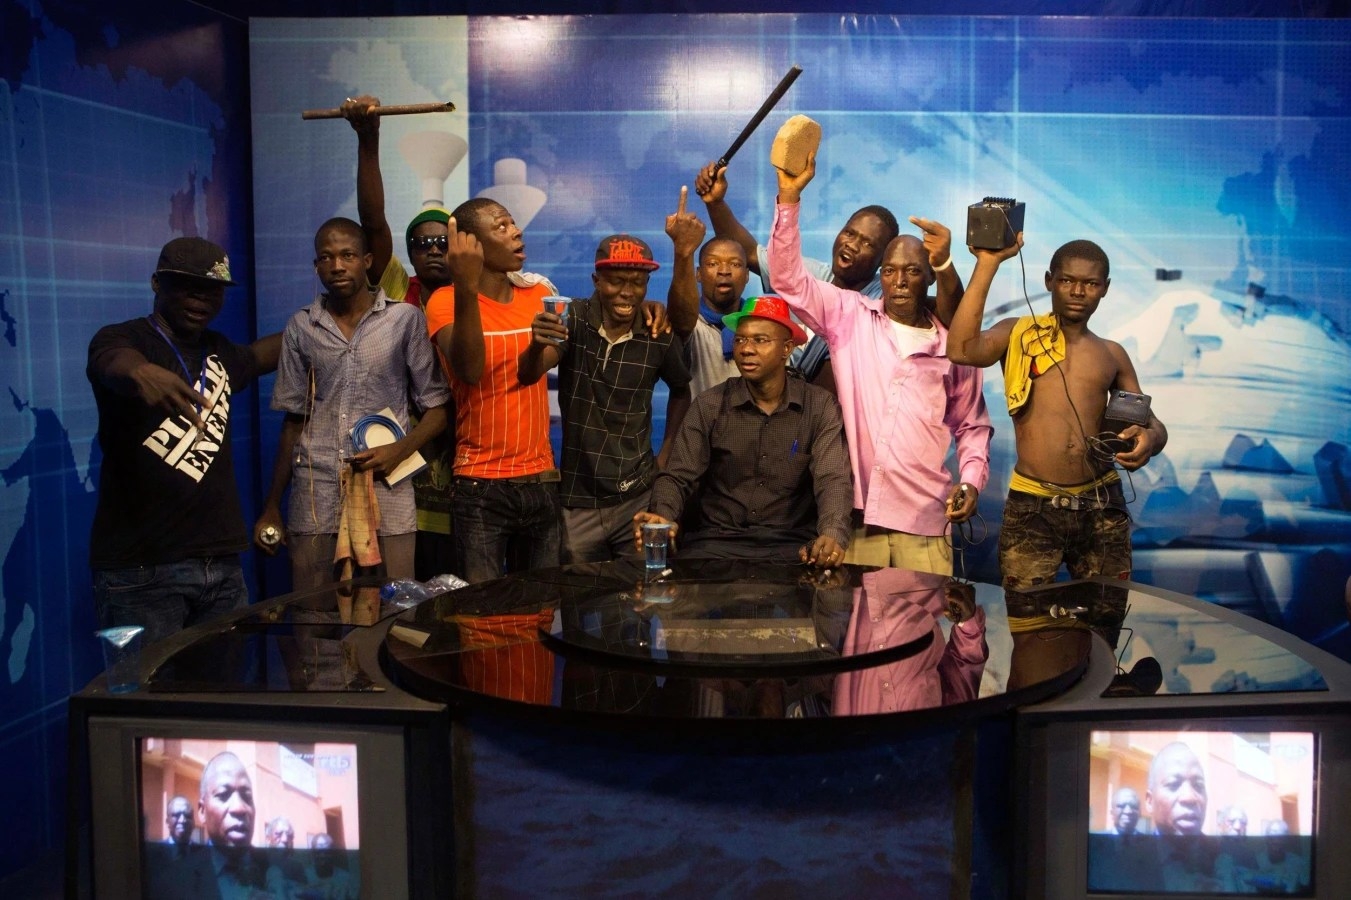 Image: Anti-government protesters take over the state TV podium in Ouagadougou